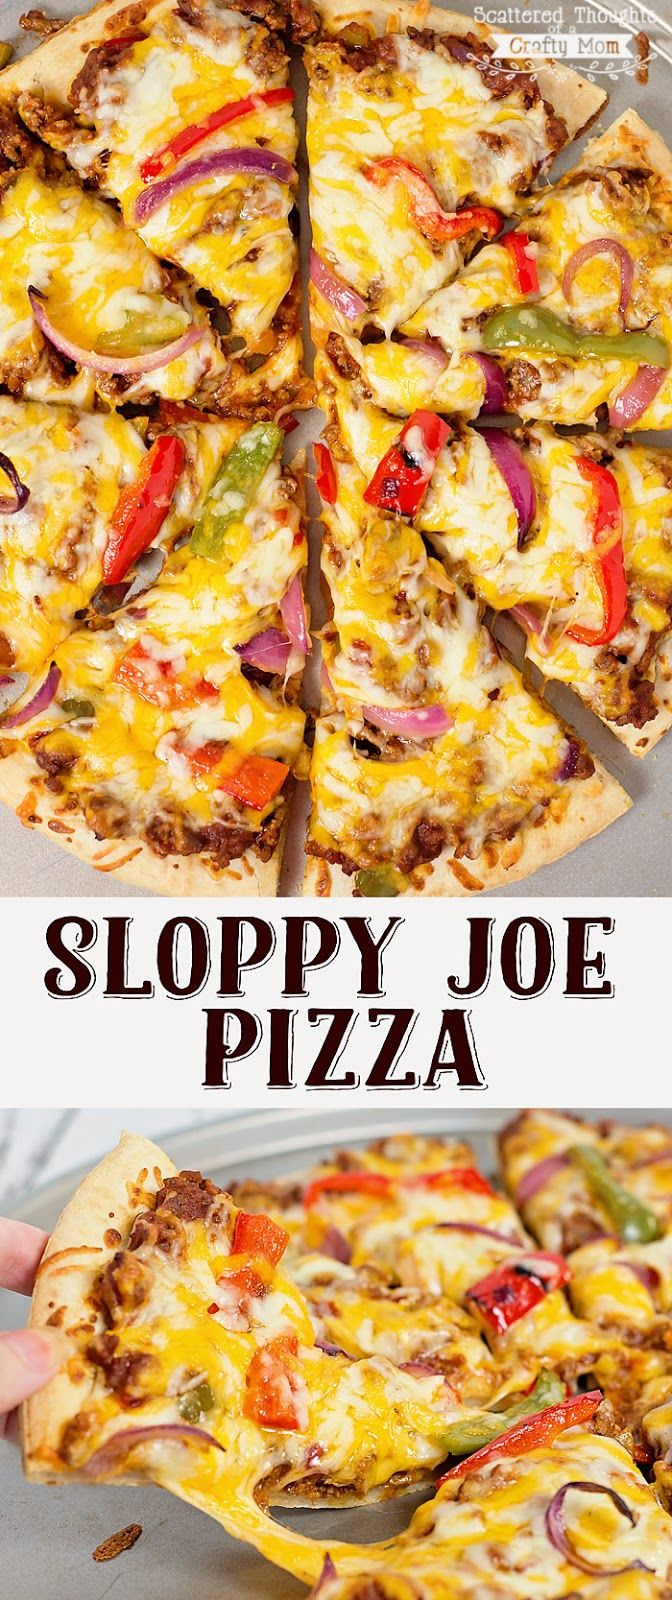 Photo of Sloppy Joe Pizza